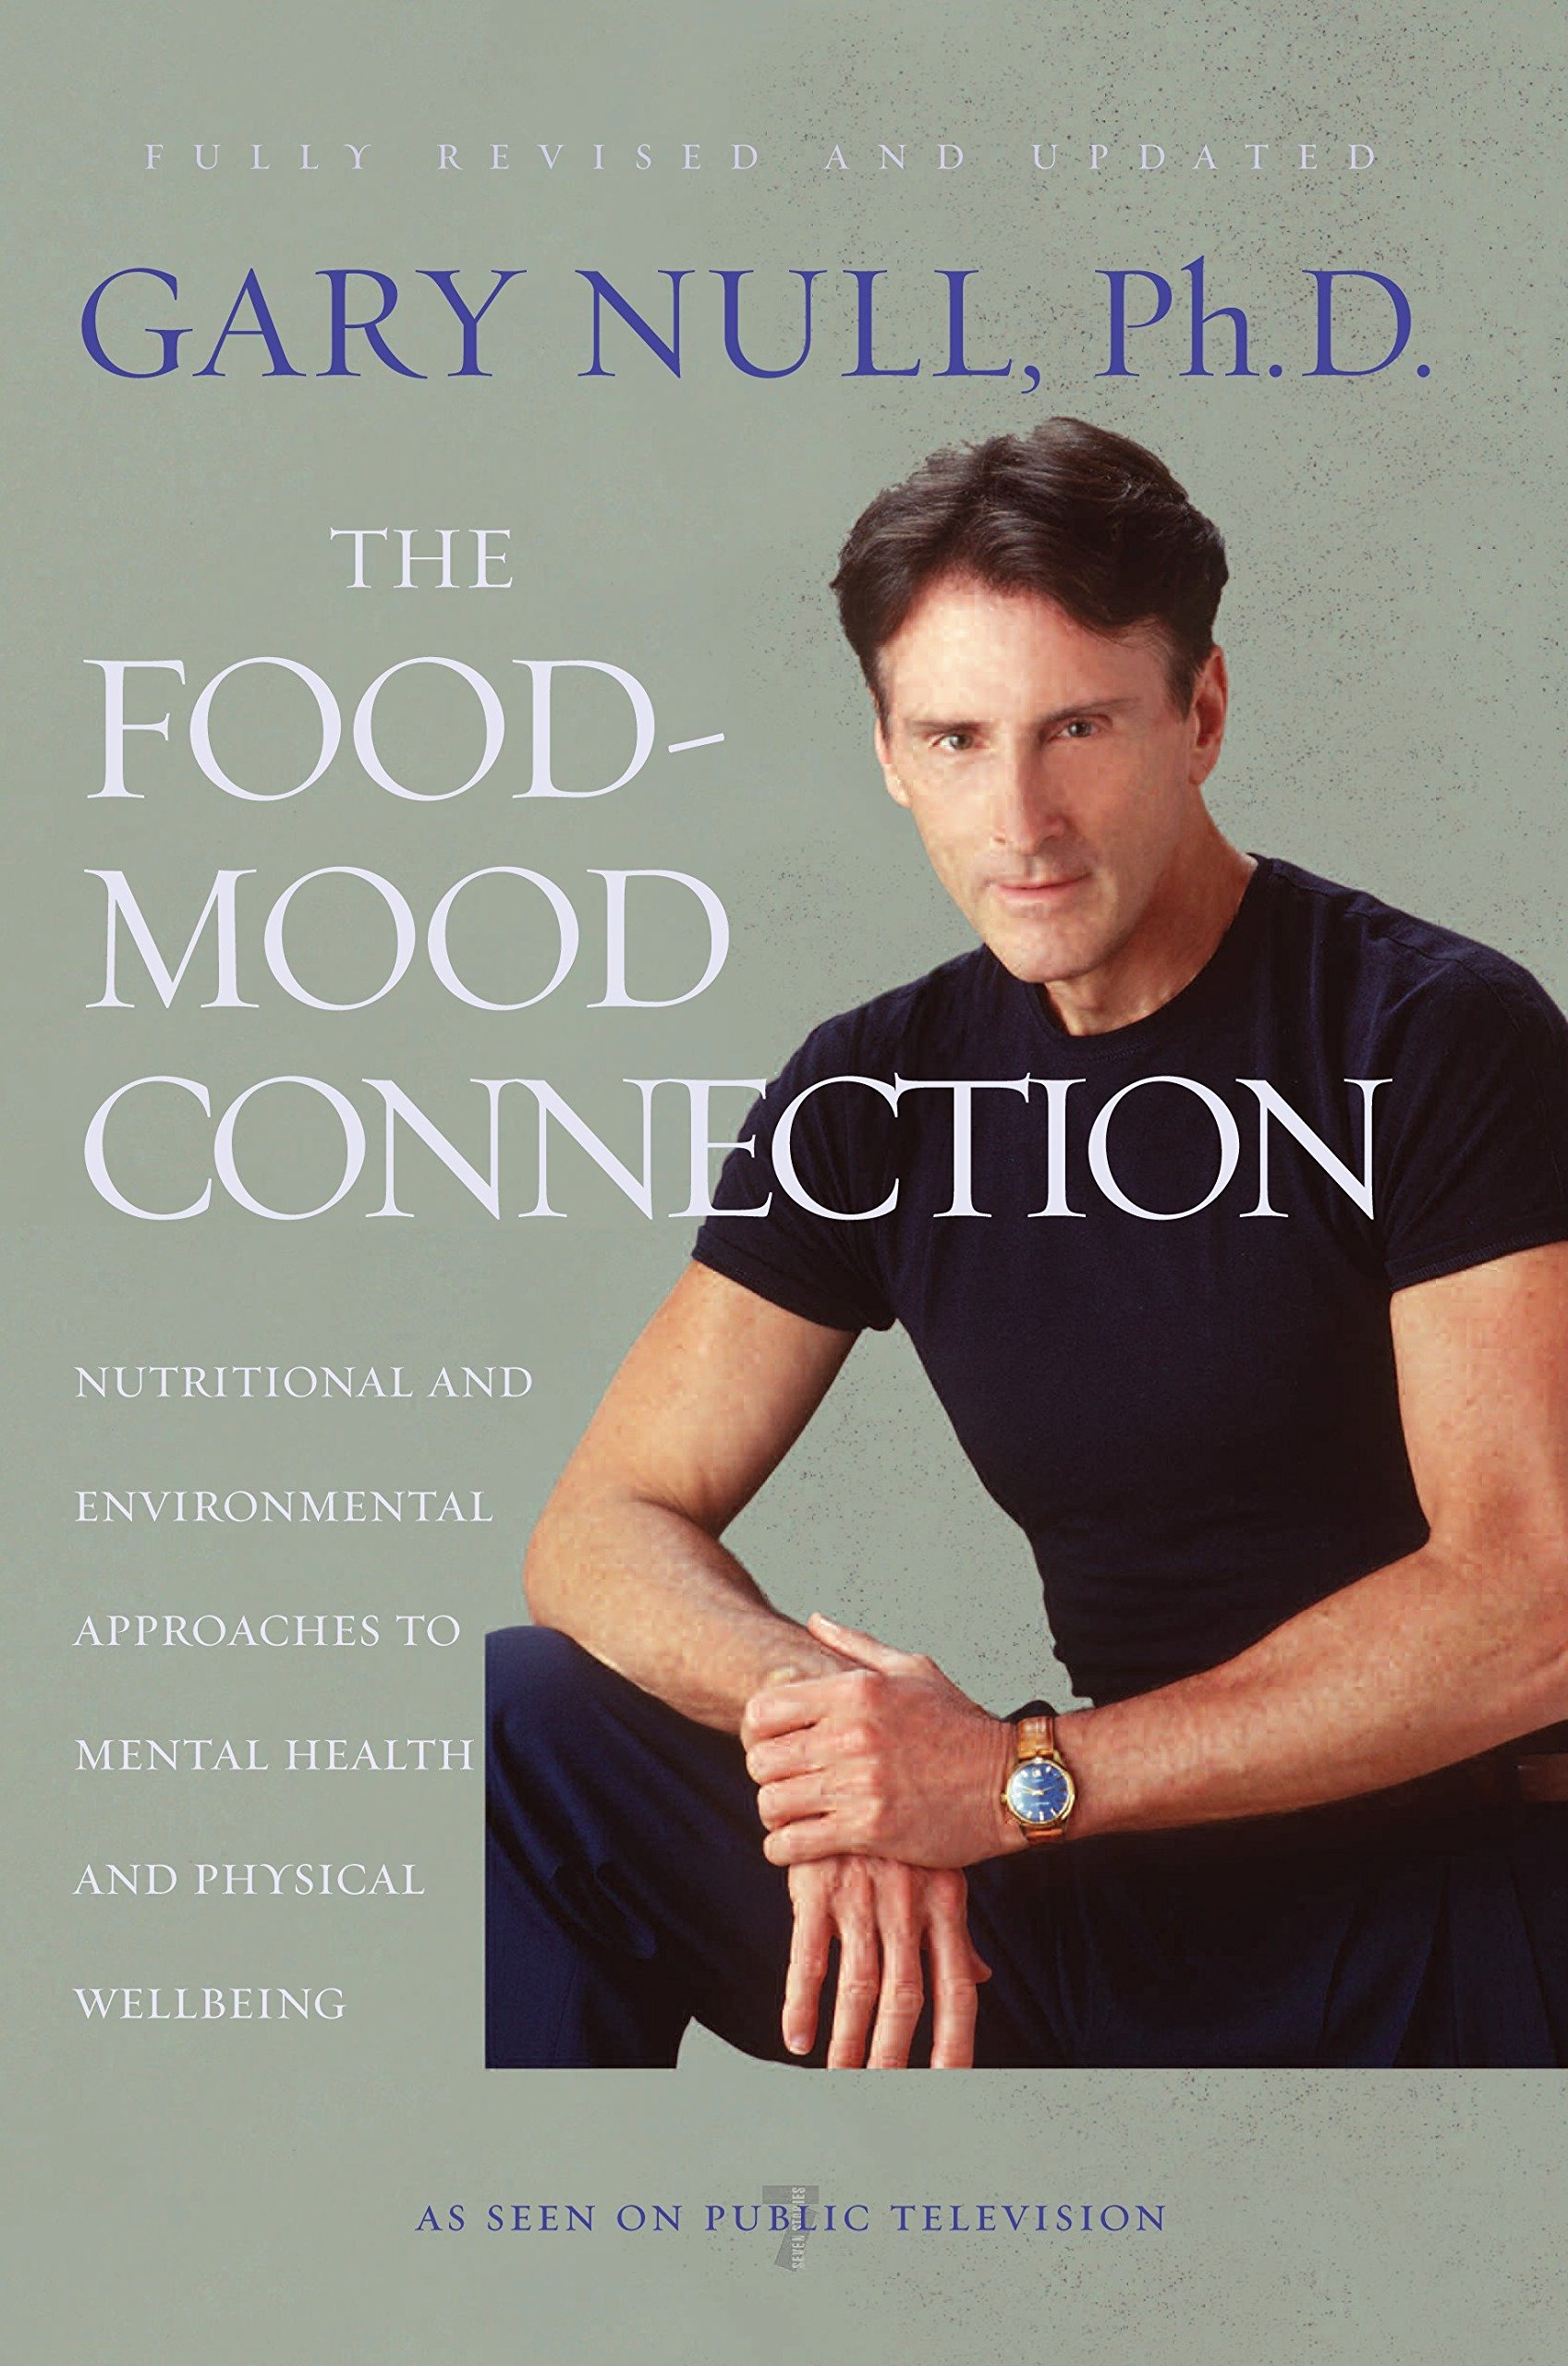 "the food-mood connection: nutrition-based and environmental approaches to mental health and physical wellbeing - By Gary Null, PhDNow, at a time when the effects of nutrition on mental health are becoming increasingly recognized and accepted by the general public, comes a completely revised tome from an early advocate of the subject: The Food-Mood Connection, by bestselling health and nutrition expert Gary Null, who was affectionately dubbed ""the new Mister Natural"" by Time magazine.Drawing from up-to-the-minute research and patient testimonials, Null reveals how alternative, nutrition-based approaches can effectively treat many mental disorders, chronic conditions, and a variety of commonly misdiagnosed organic conditions. With participation from more than sixty-five alternative practitioners, this edition includes new chapters, protocols for health, updates on topics ranging from alcoholism and depression to food allergies and PMS, plus revised supplementary sections on Prozac and autism."